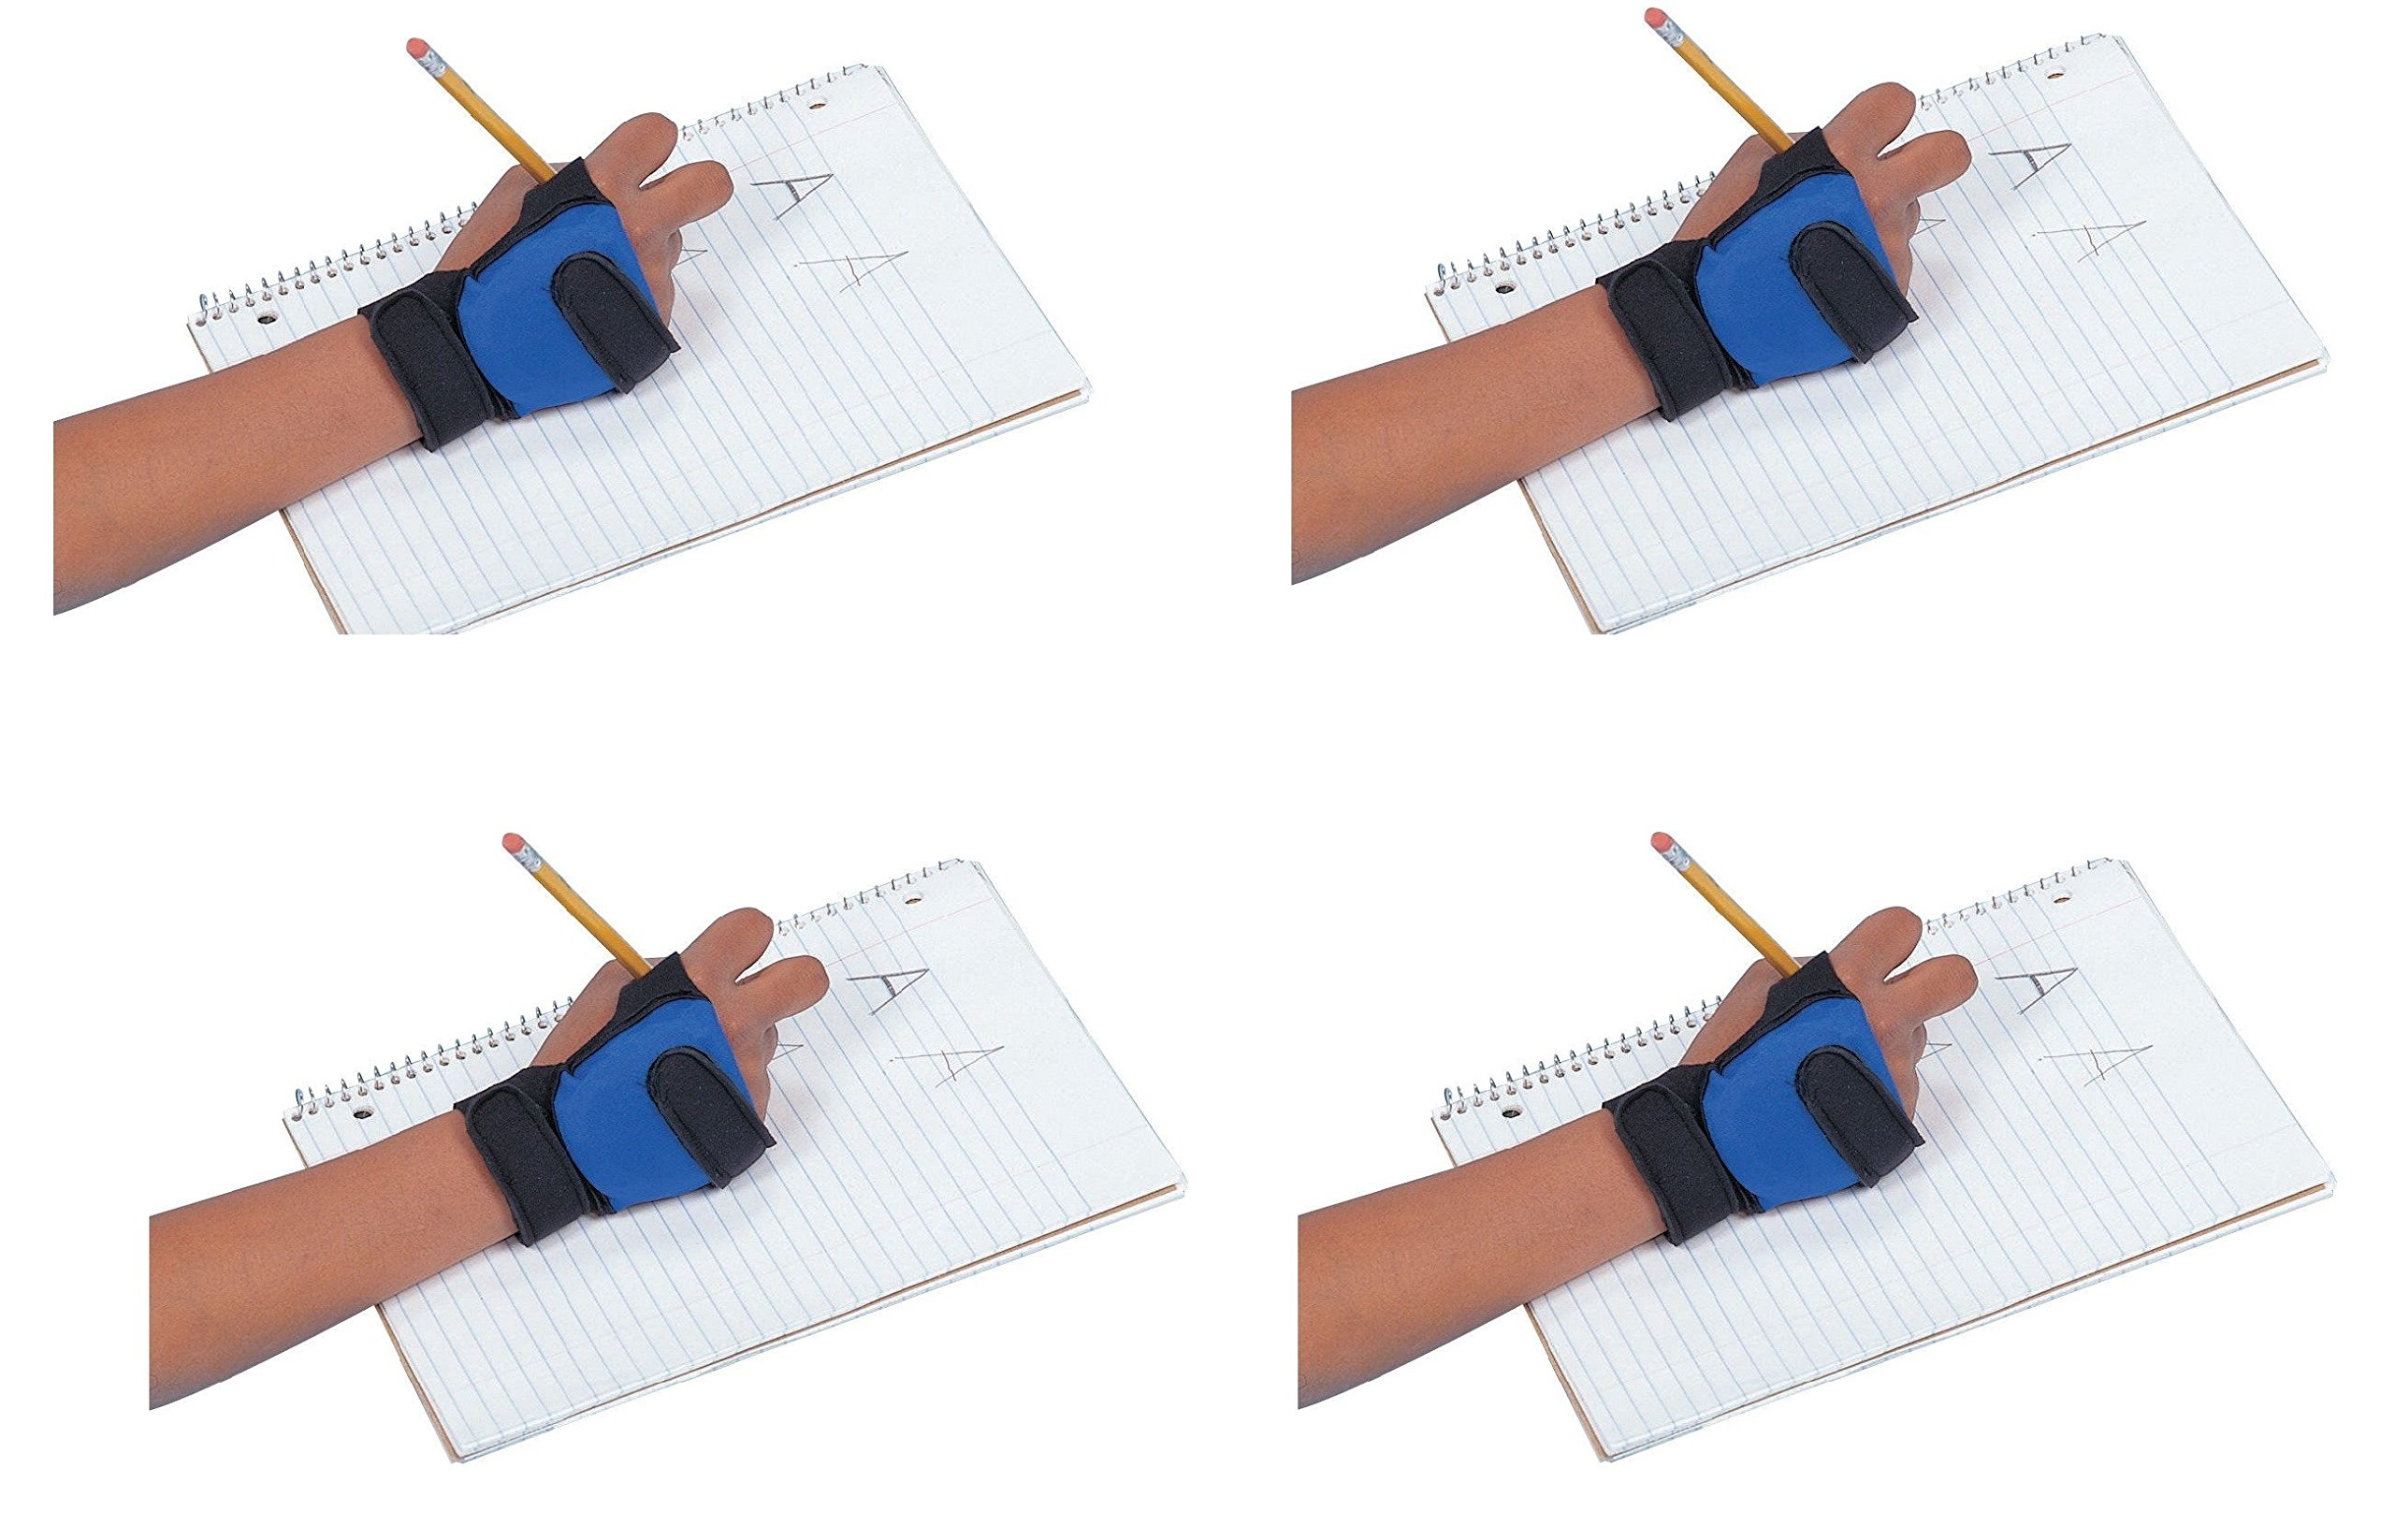 Abilitations 026712 Child Size Write Weight, Right Hand, 0.5 Pound (4 pack)